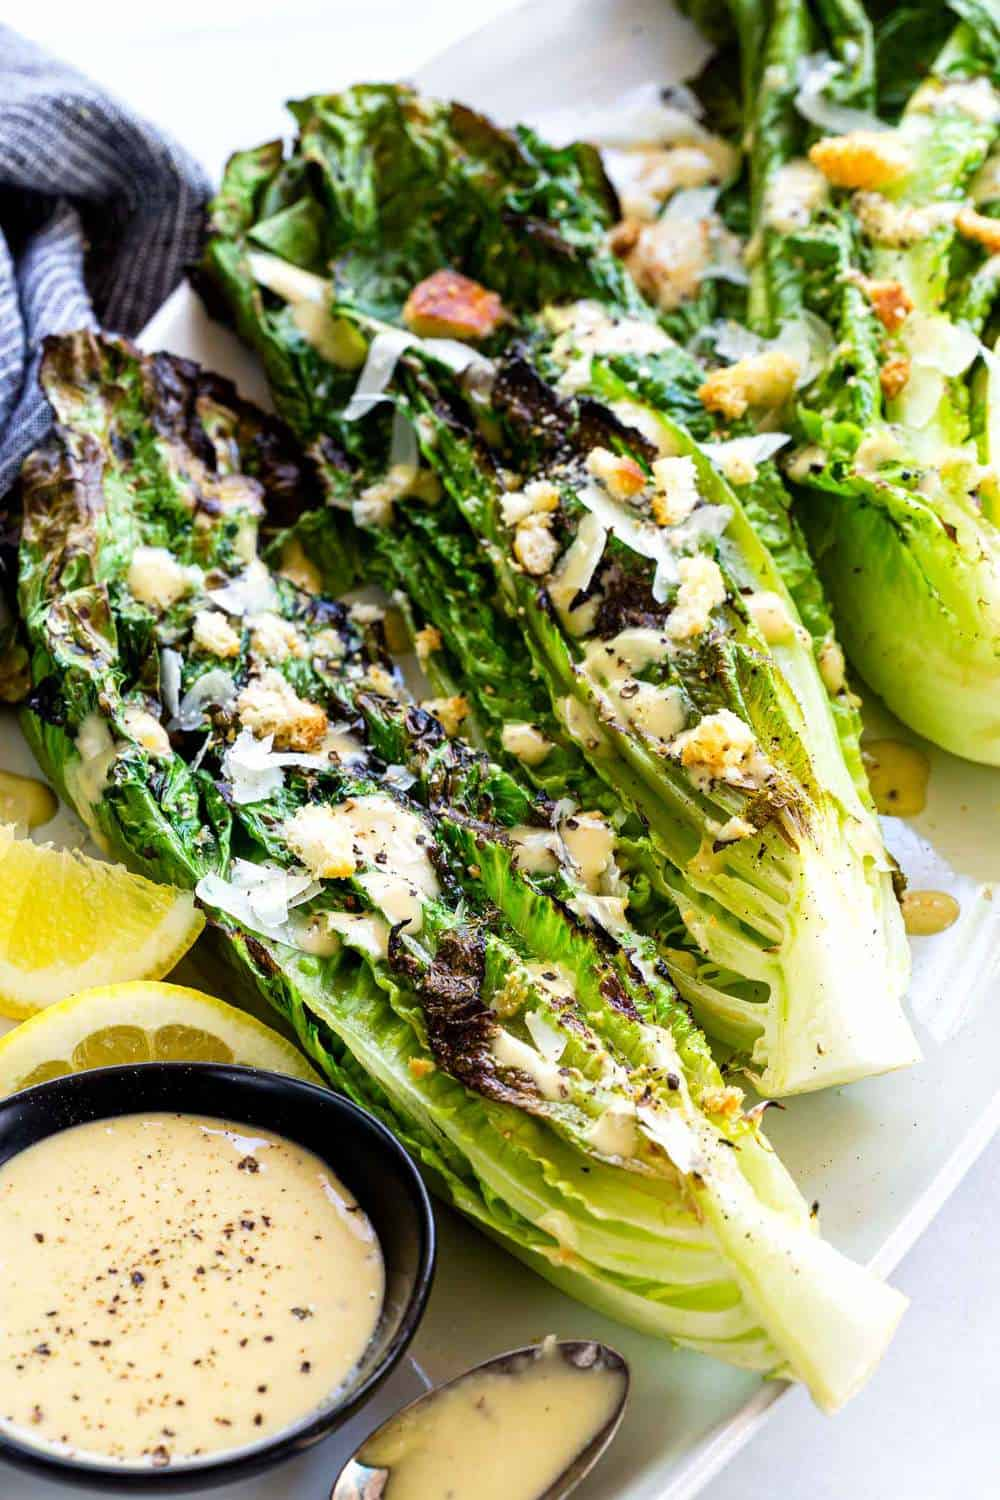 Grilled Caesar Salad with croutons on top